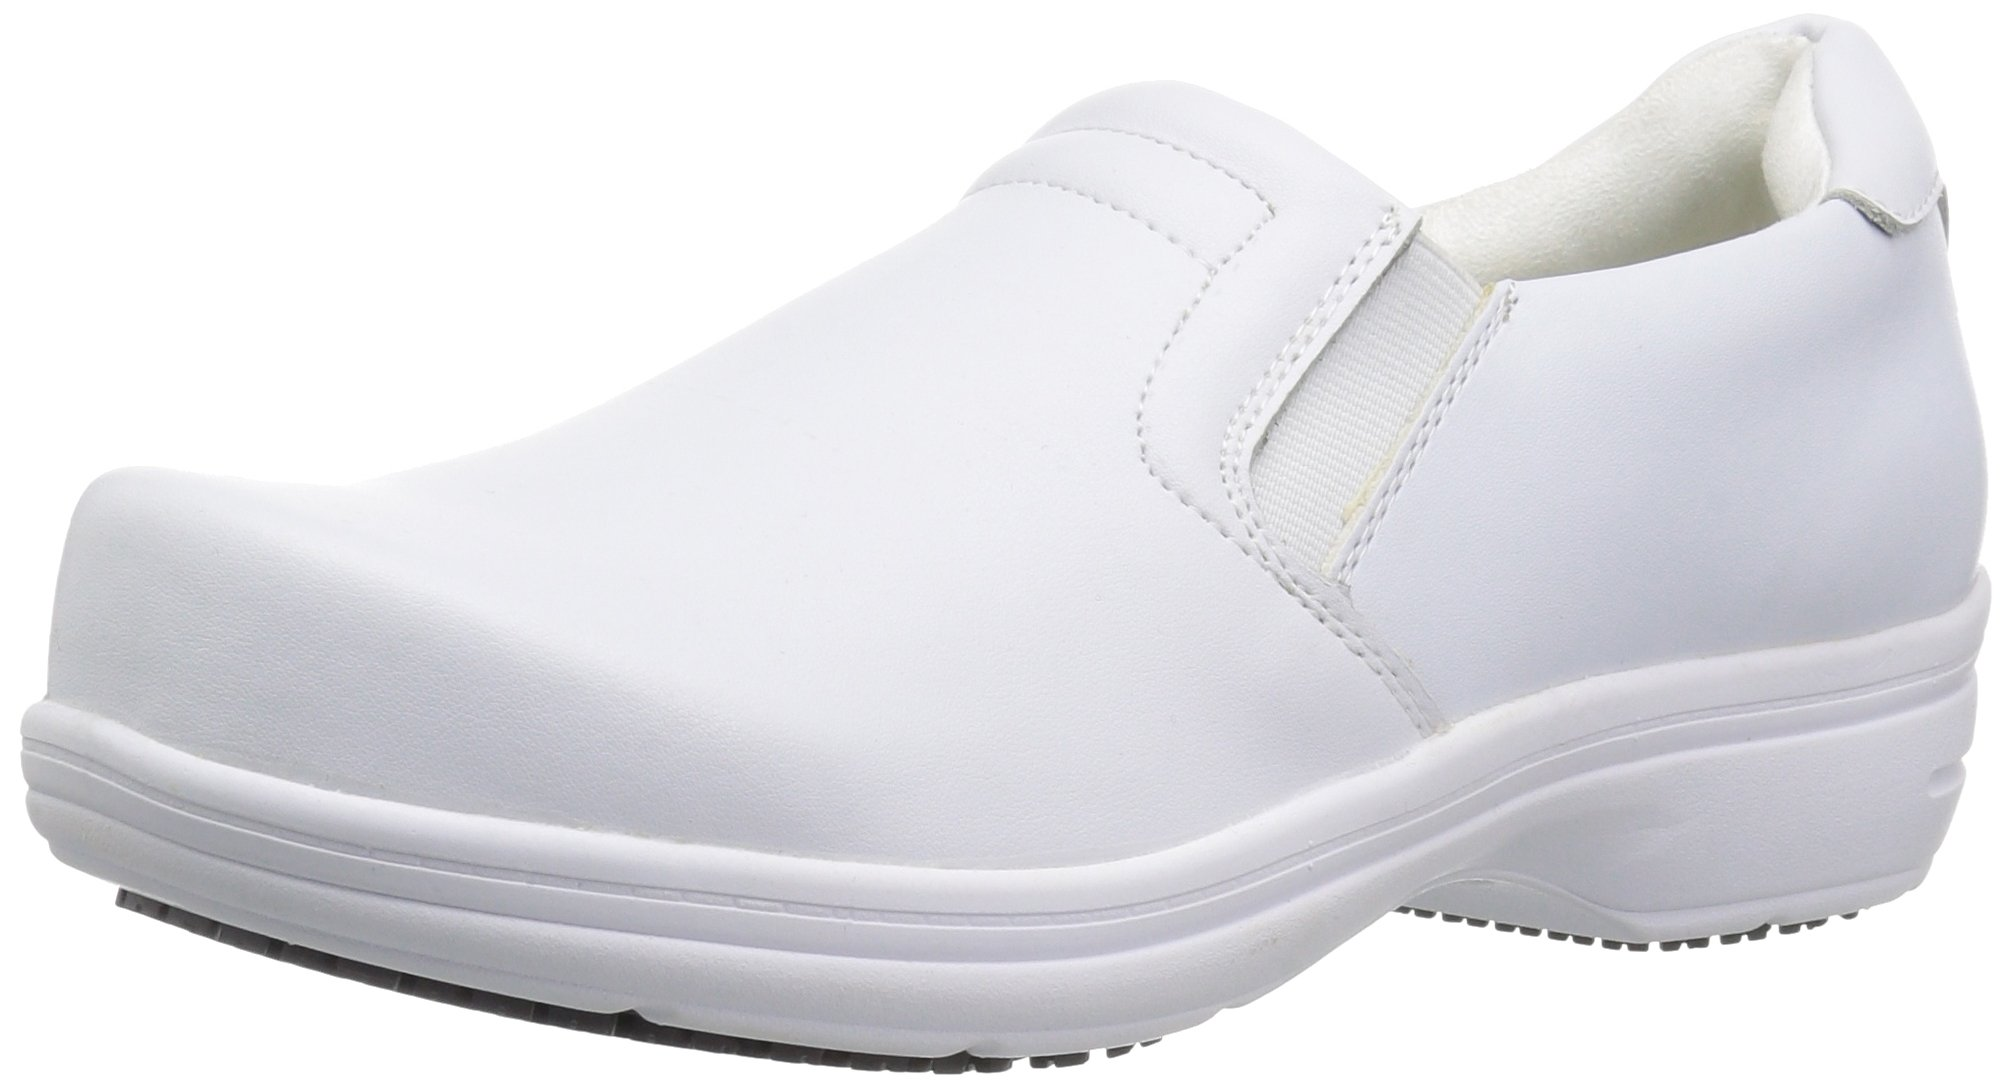 Easy Works Women's Bind Health Care Professional Shoe, White, 8.5 M US